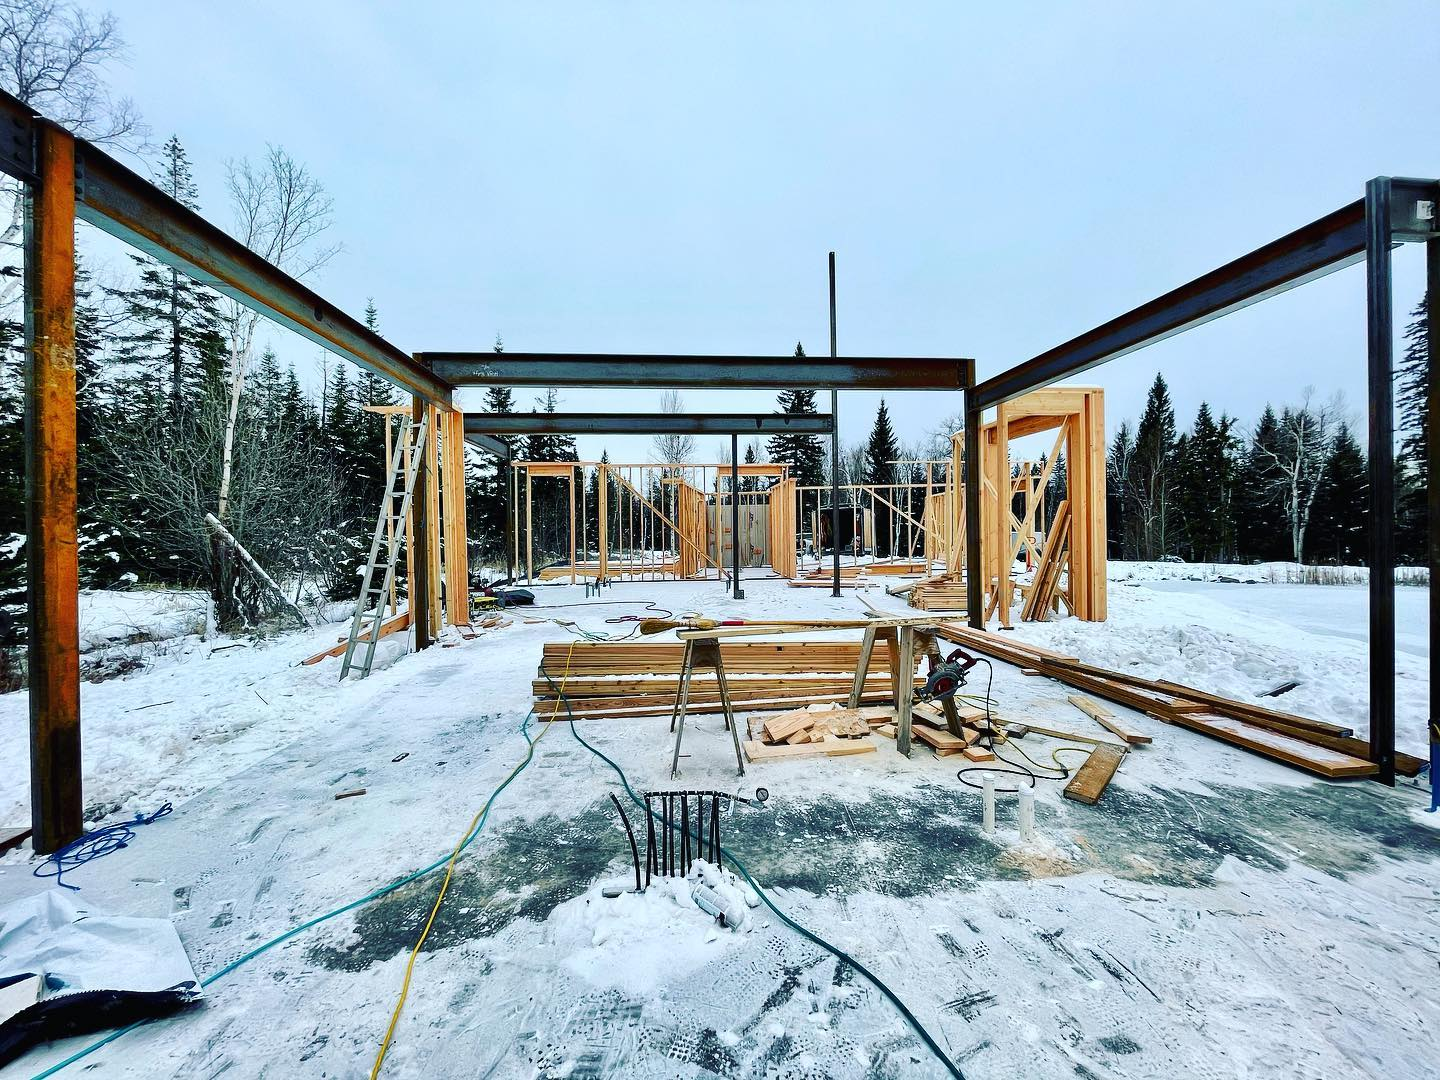 All this steel is making me very happy whitefish custom home builder